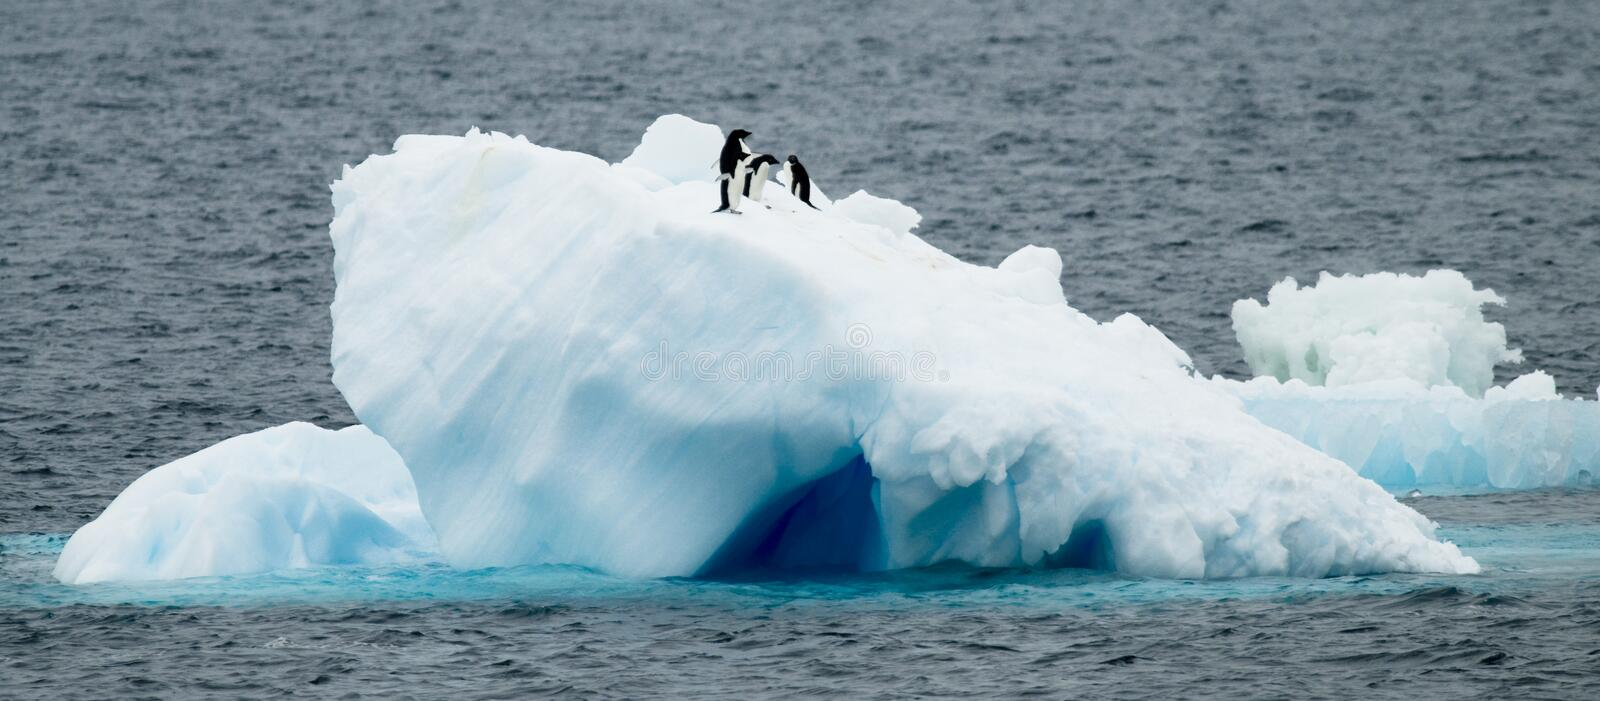 Adelie Penguins on Ice stock images